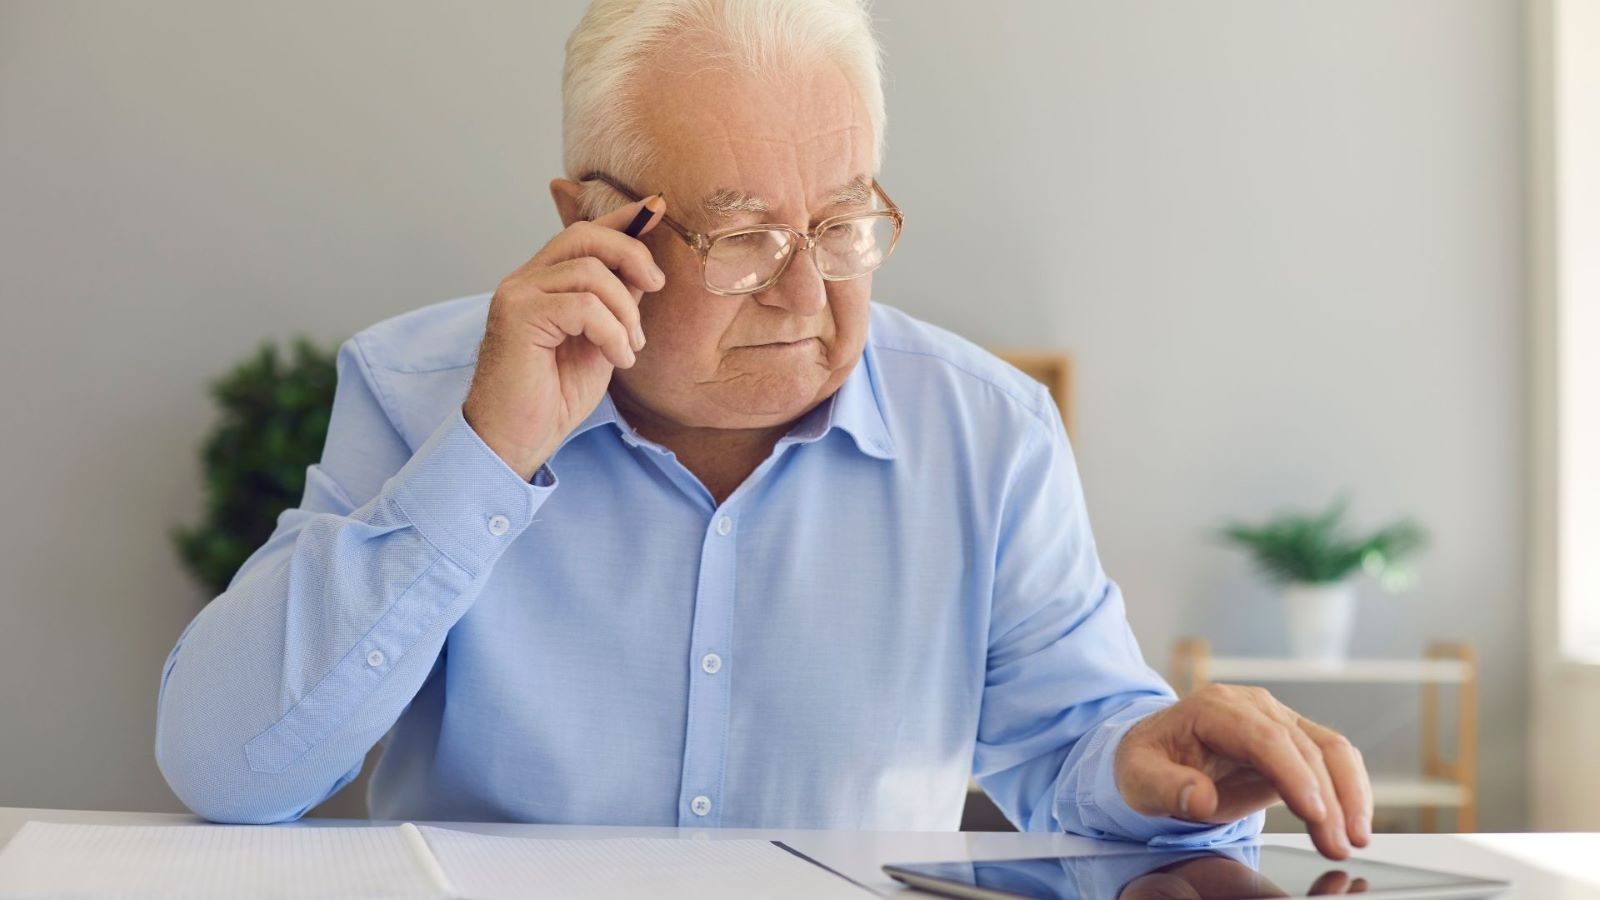 Senior man looking at his tablet making notes as if researching online